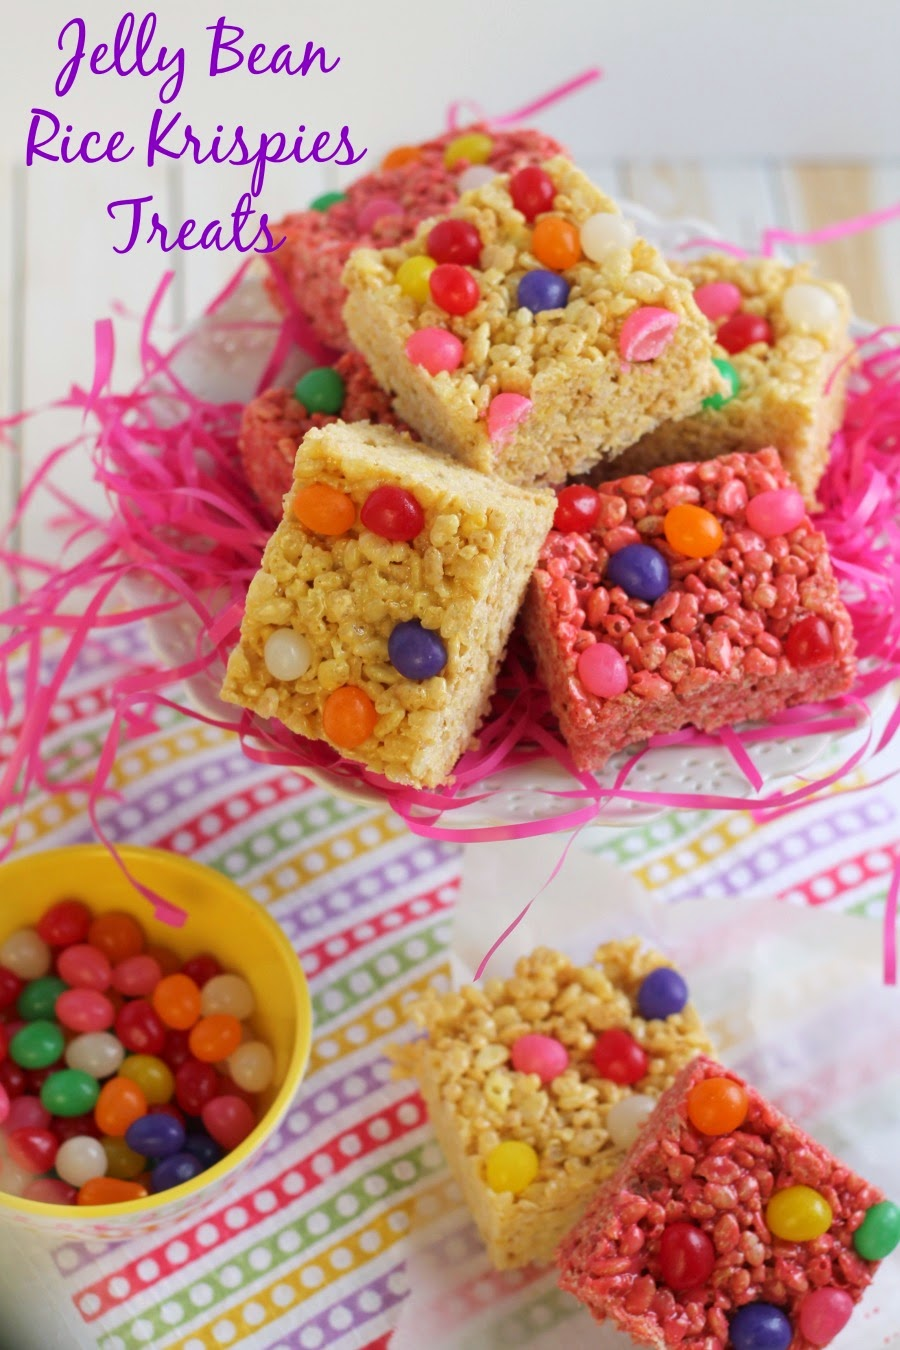 These easy to make and colorful Jelly Bean Rice Krispies Treats combine two family loved classics into one perfect sweet treat for Easter or spring.